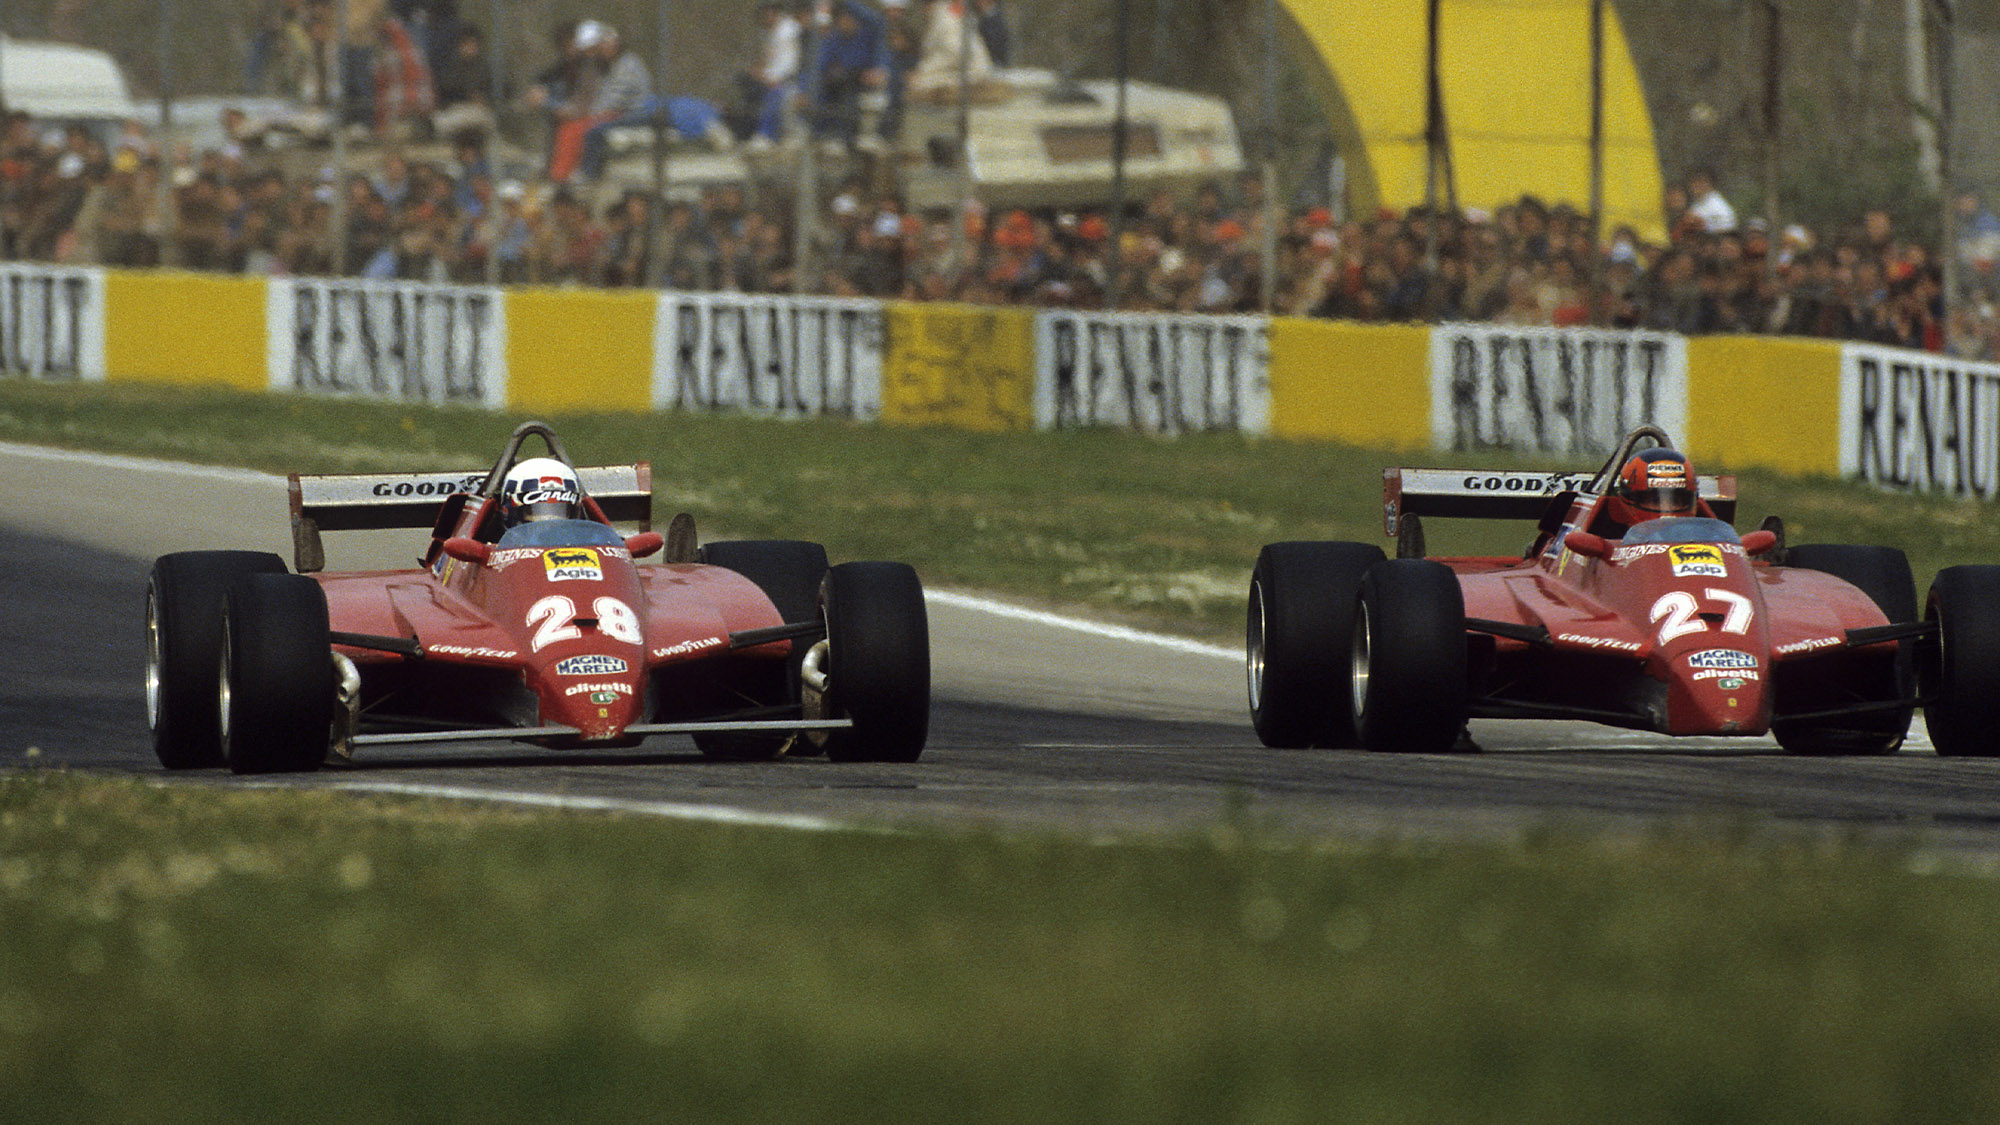 F1 at Imola: controversy, brilliance and the bizarre